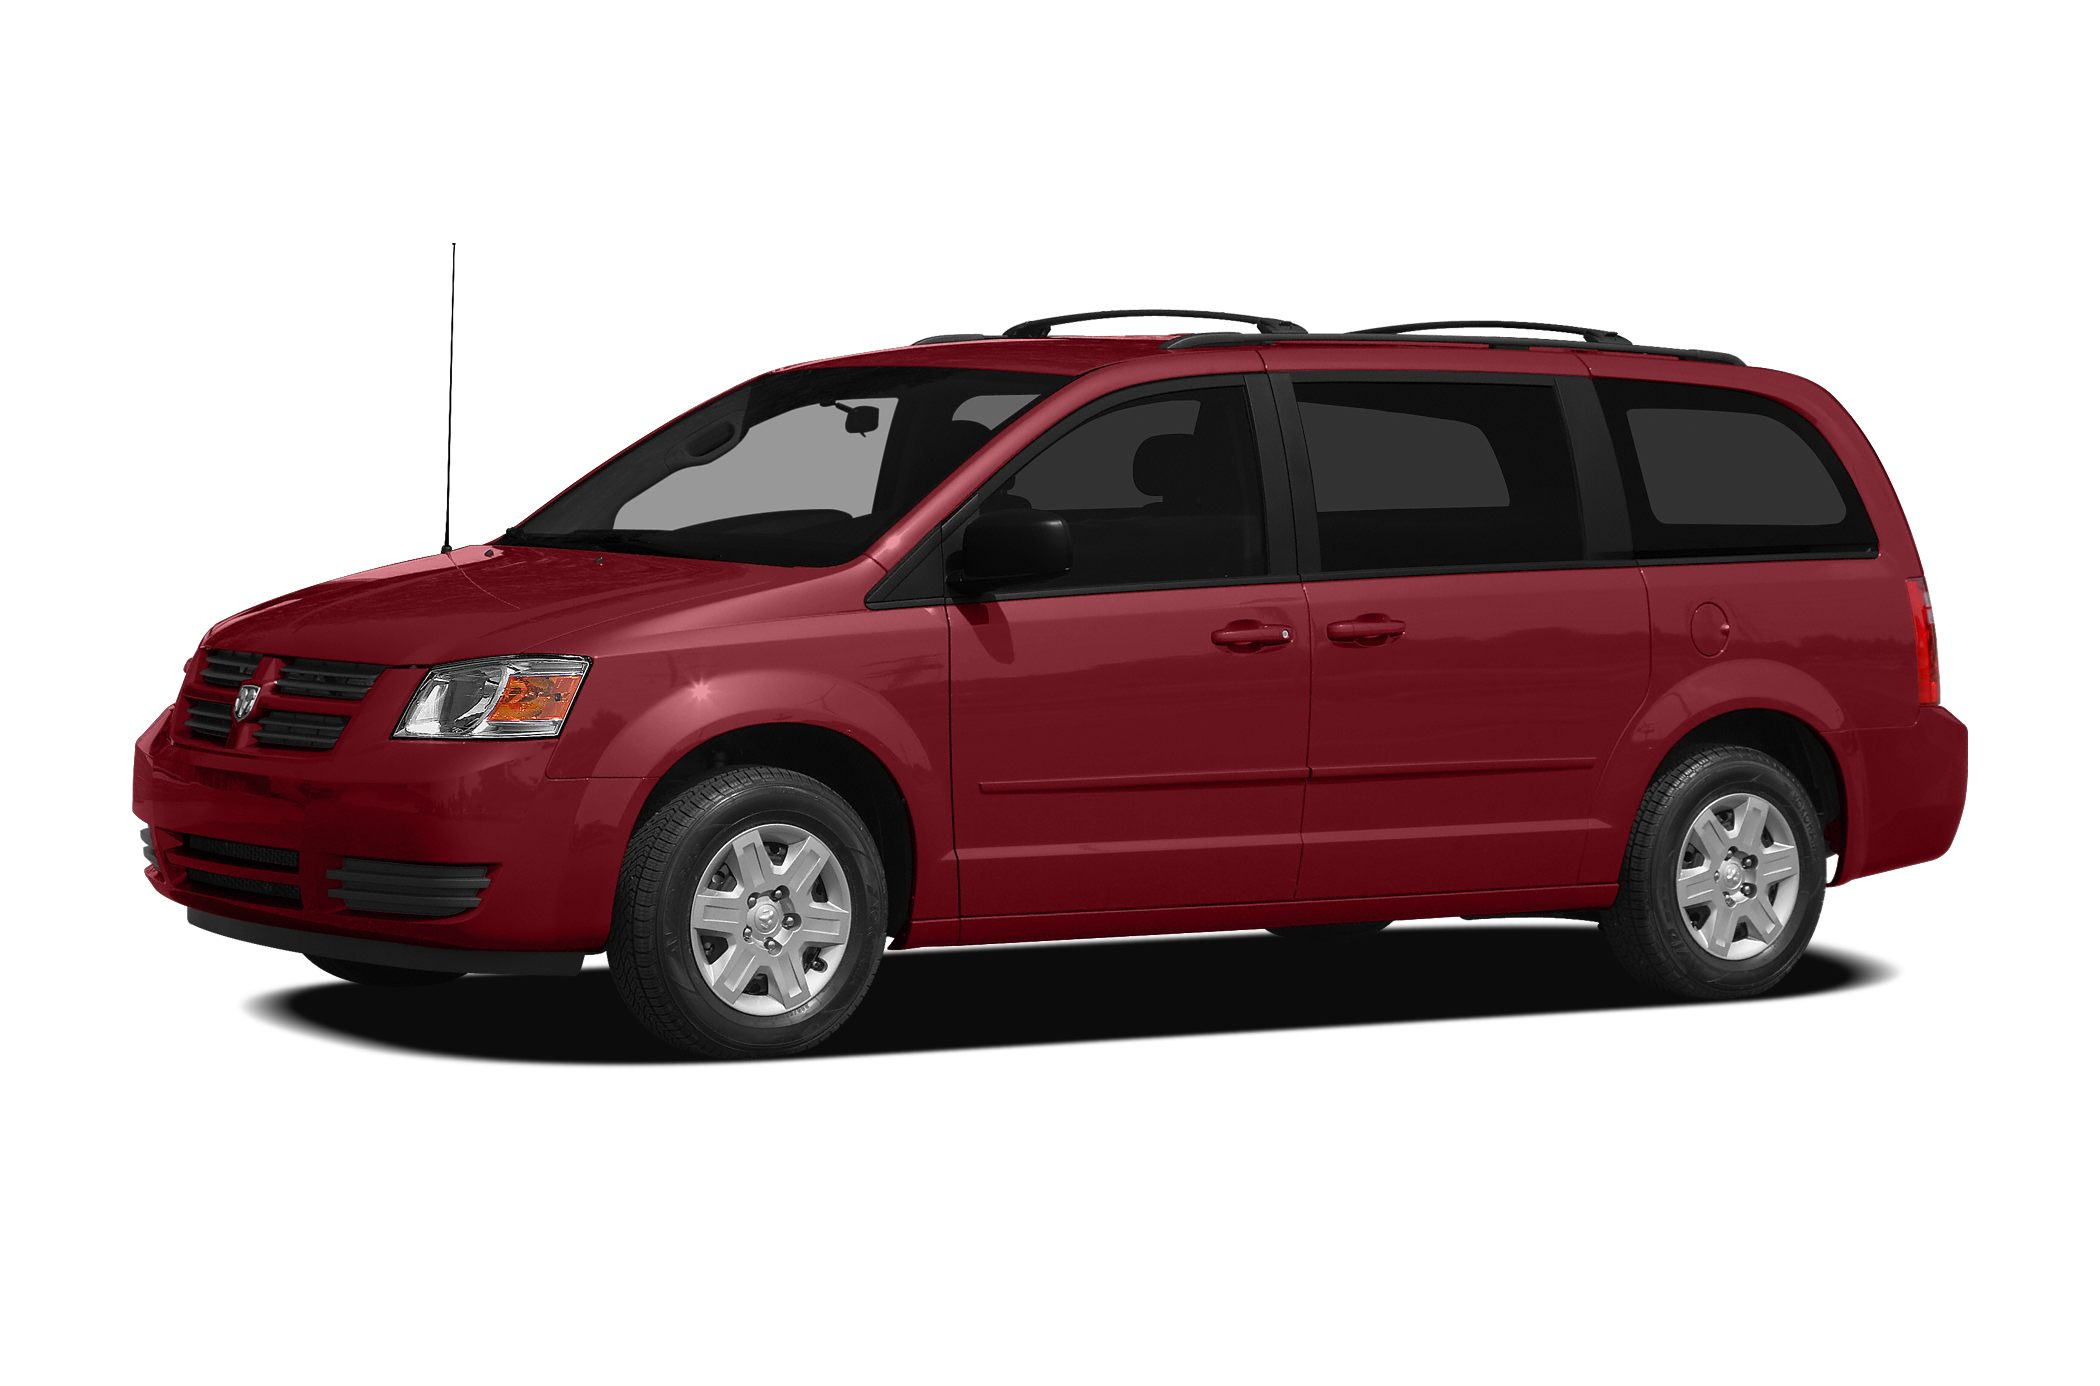 2010 Dodge Grand Caravan SE Minivan for sale in Crossville for $7,547 with 170,849 miles